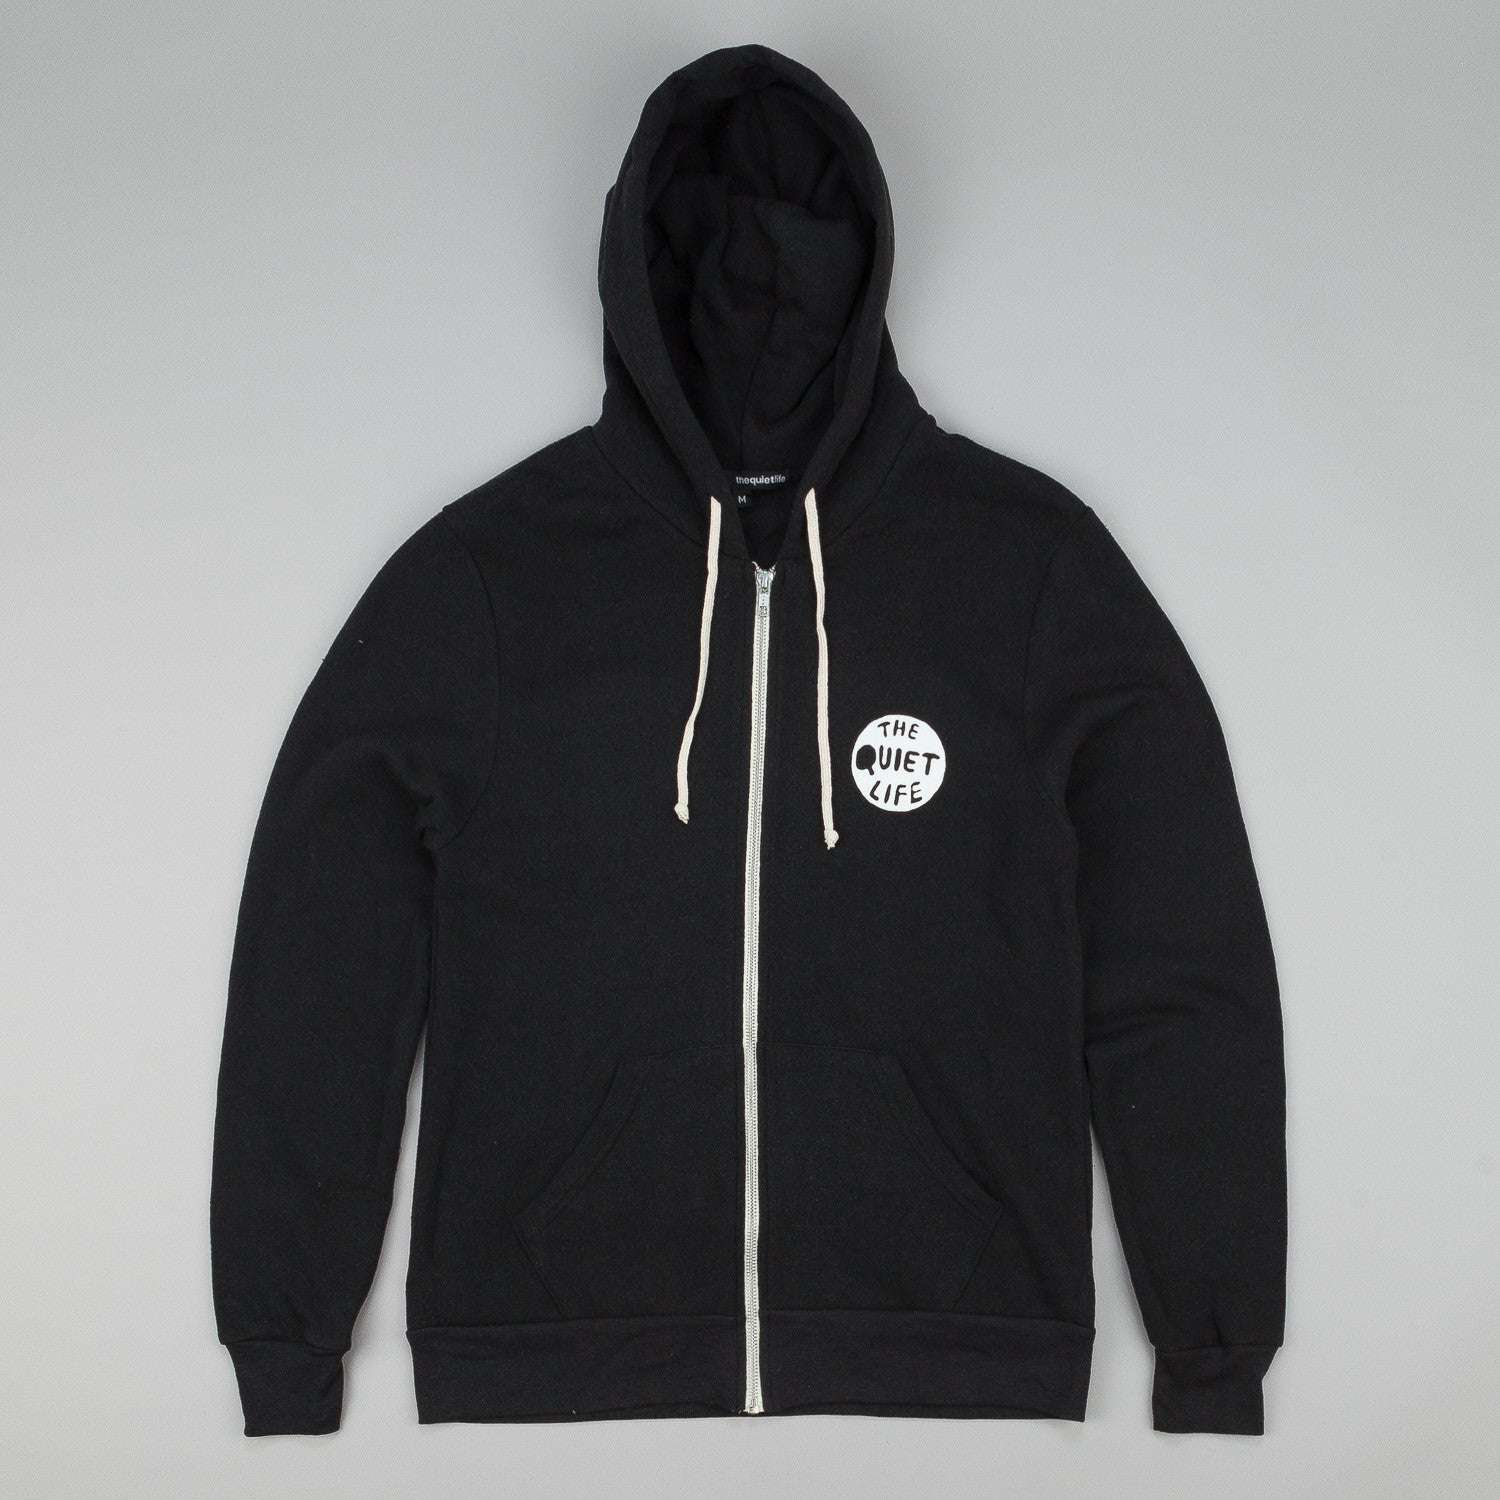 The Quiet Life Volcano Zip Up Hooded Sweatshirt - Black